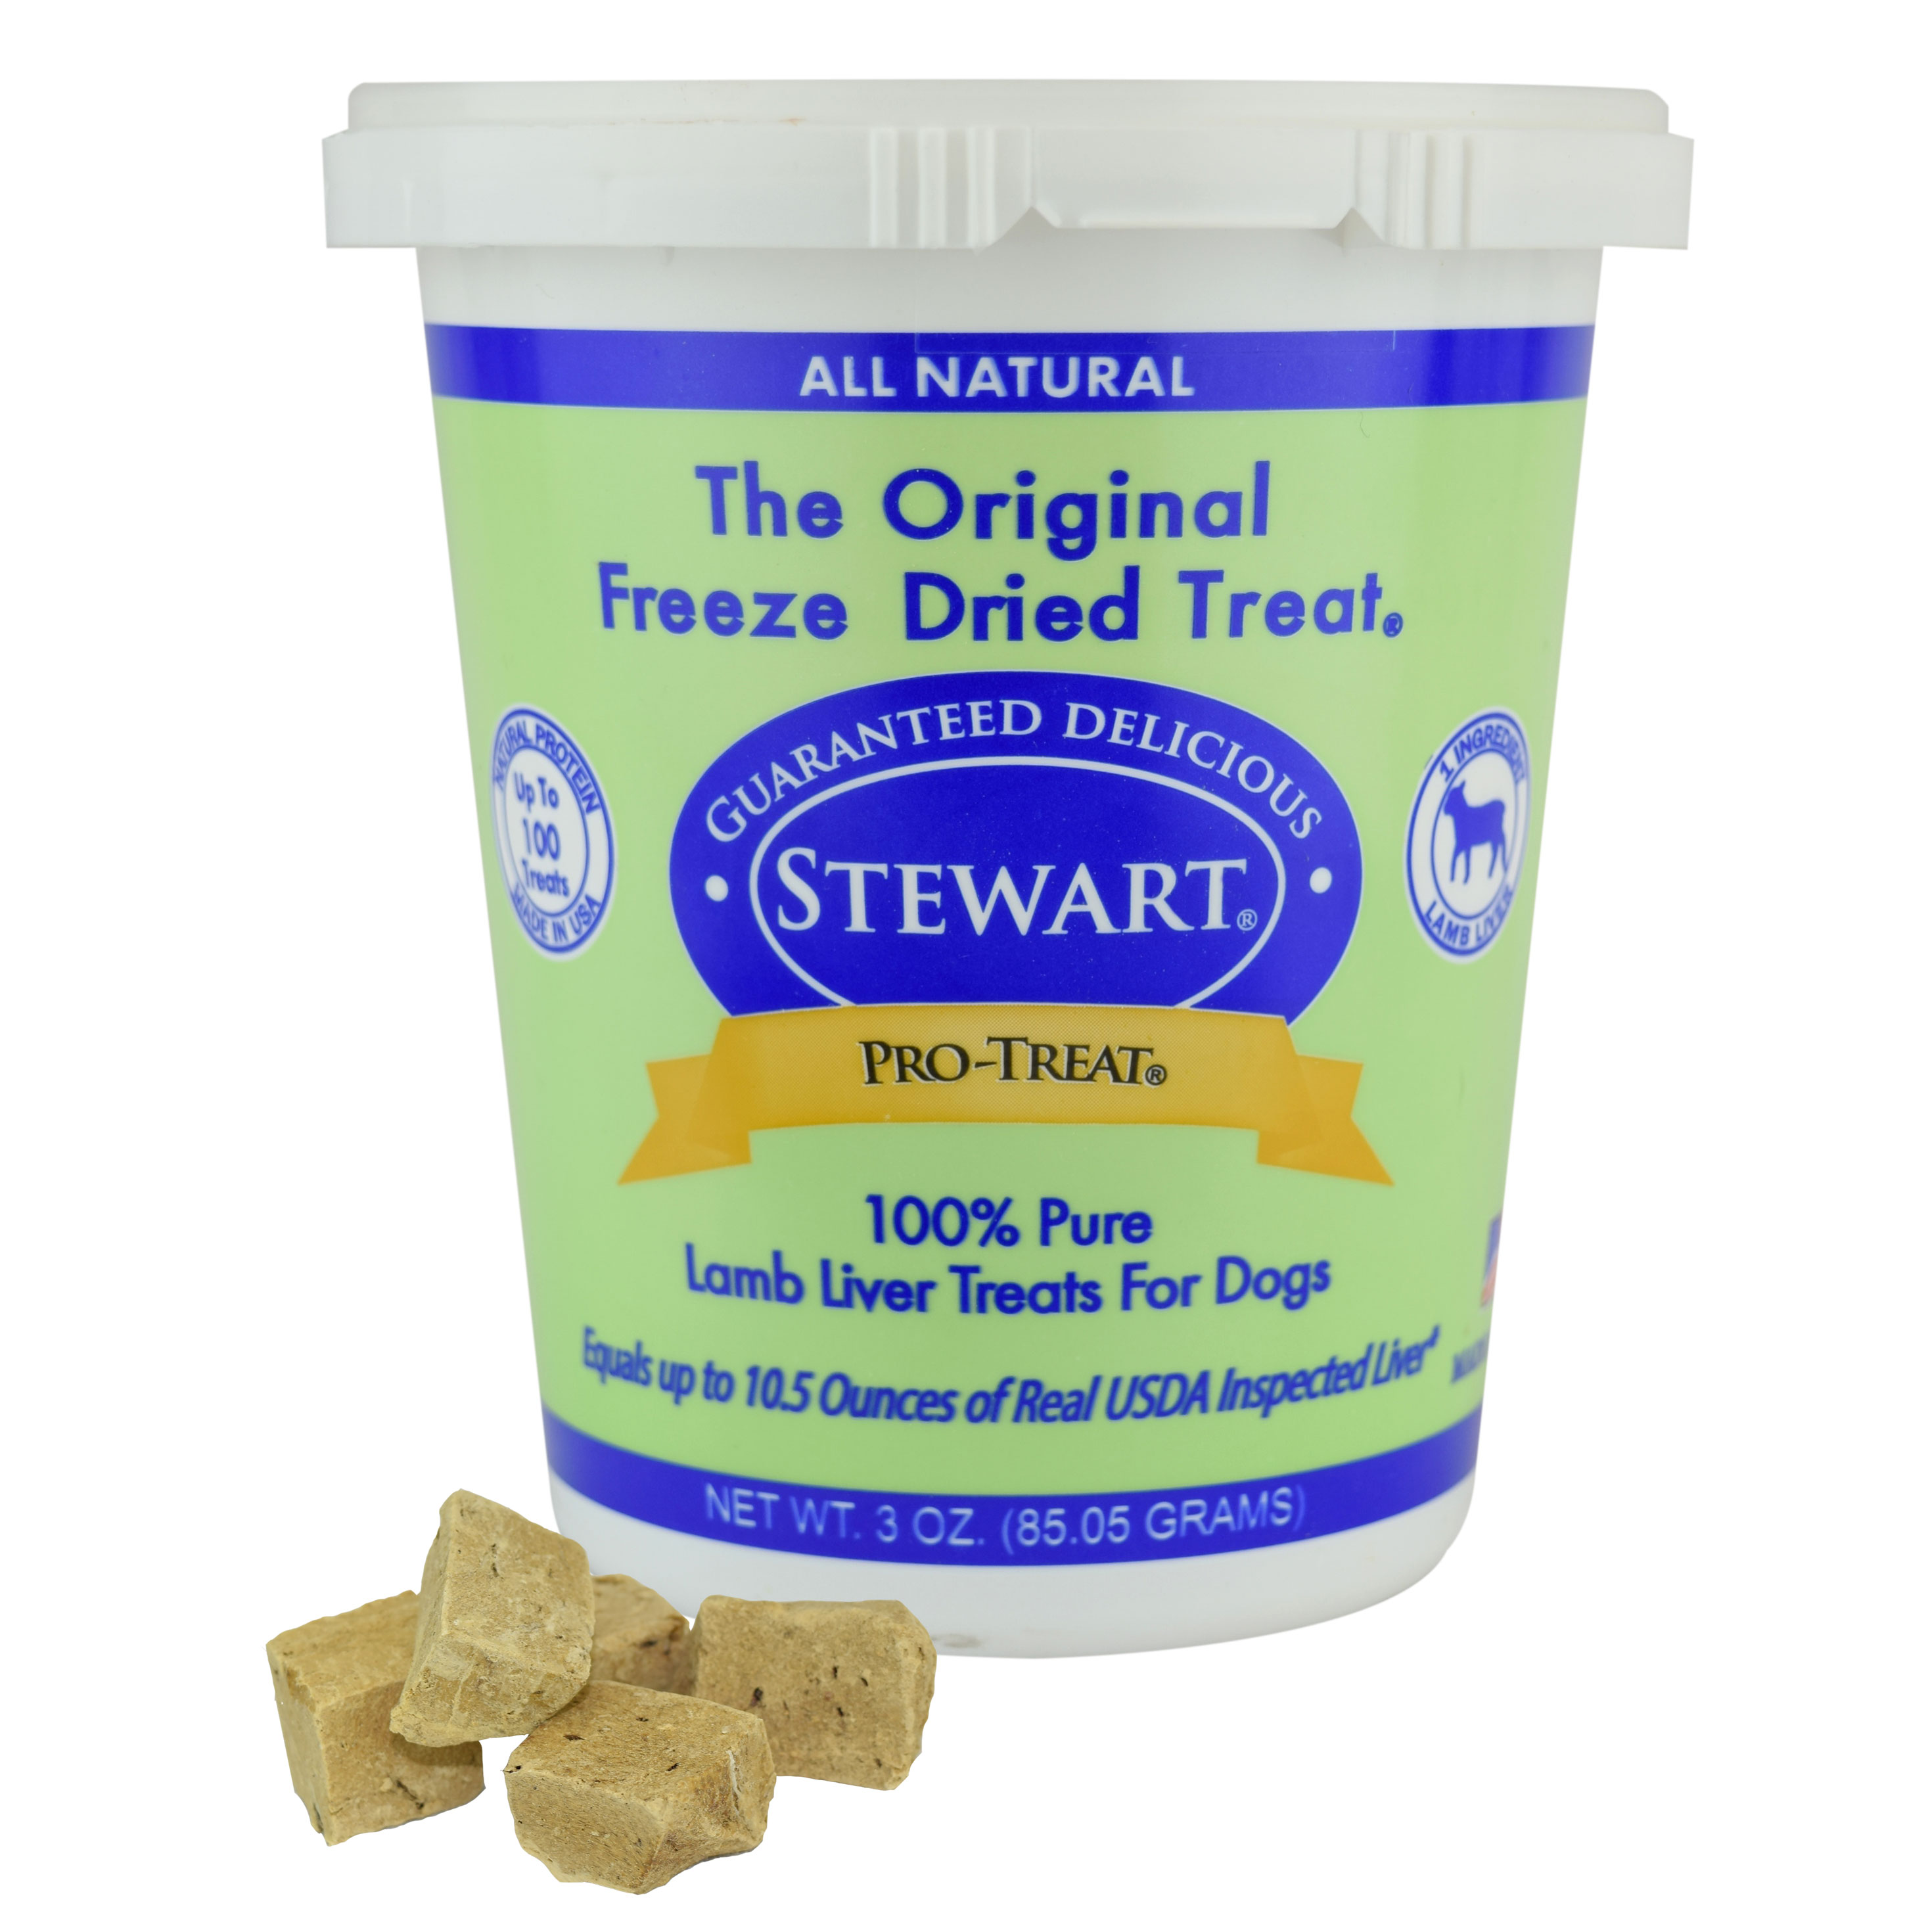 Stewart Freeze Dried Lamb Liver Dog Treats by Pro-Treat, 3 oz. Tub